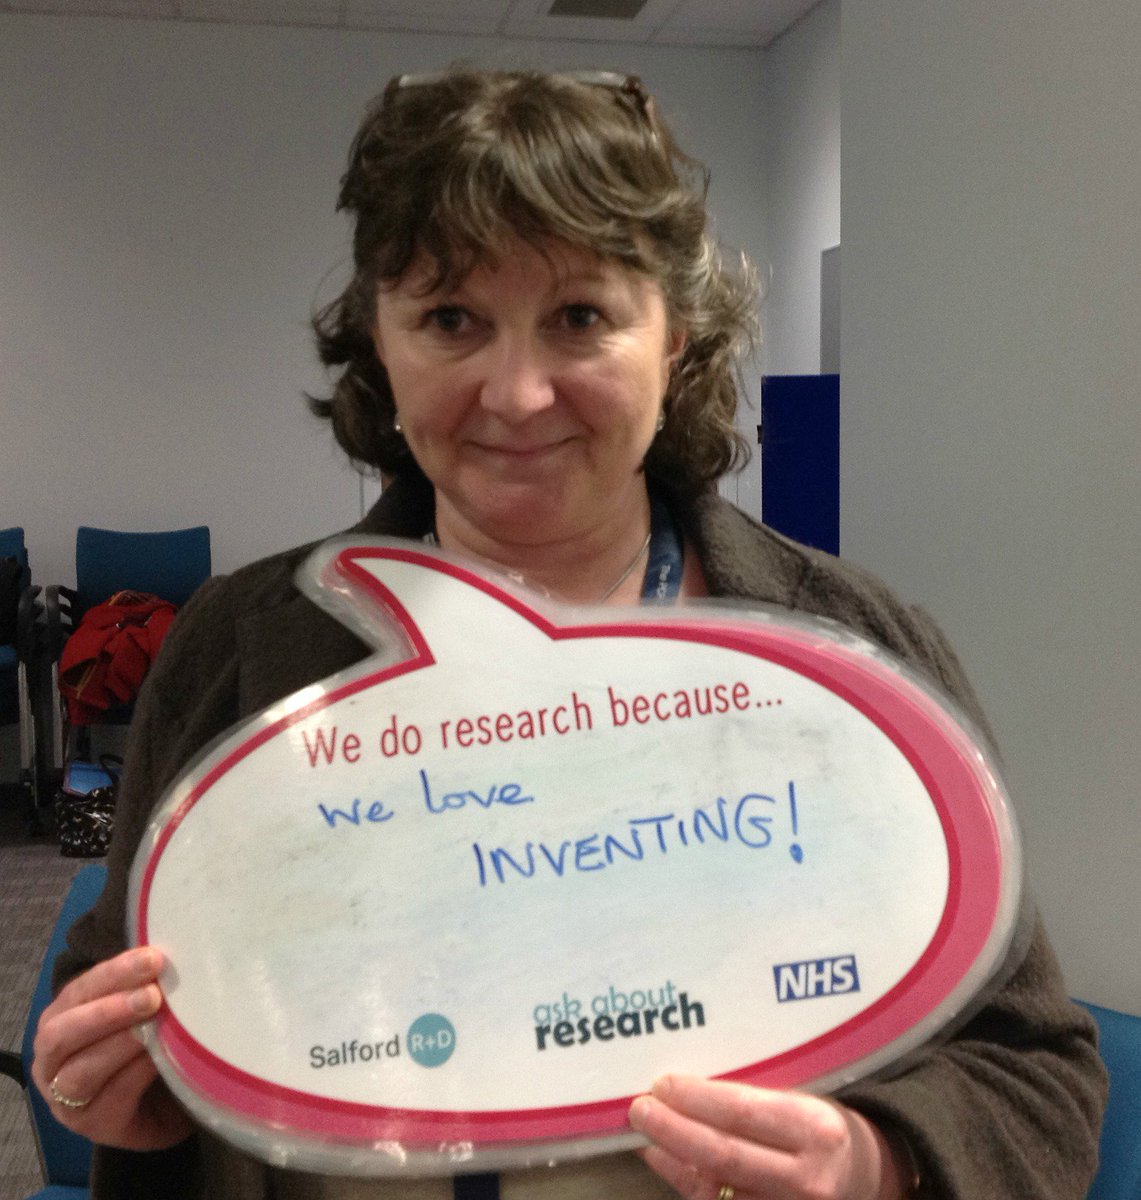 Great to meet Prof Tracy Hussell @MccirUoM at #artinresearch event yesterday #whywedoresearch https://t.co/8ETQRWAMfd